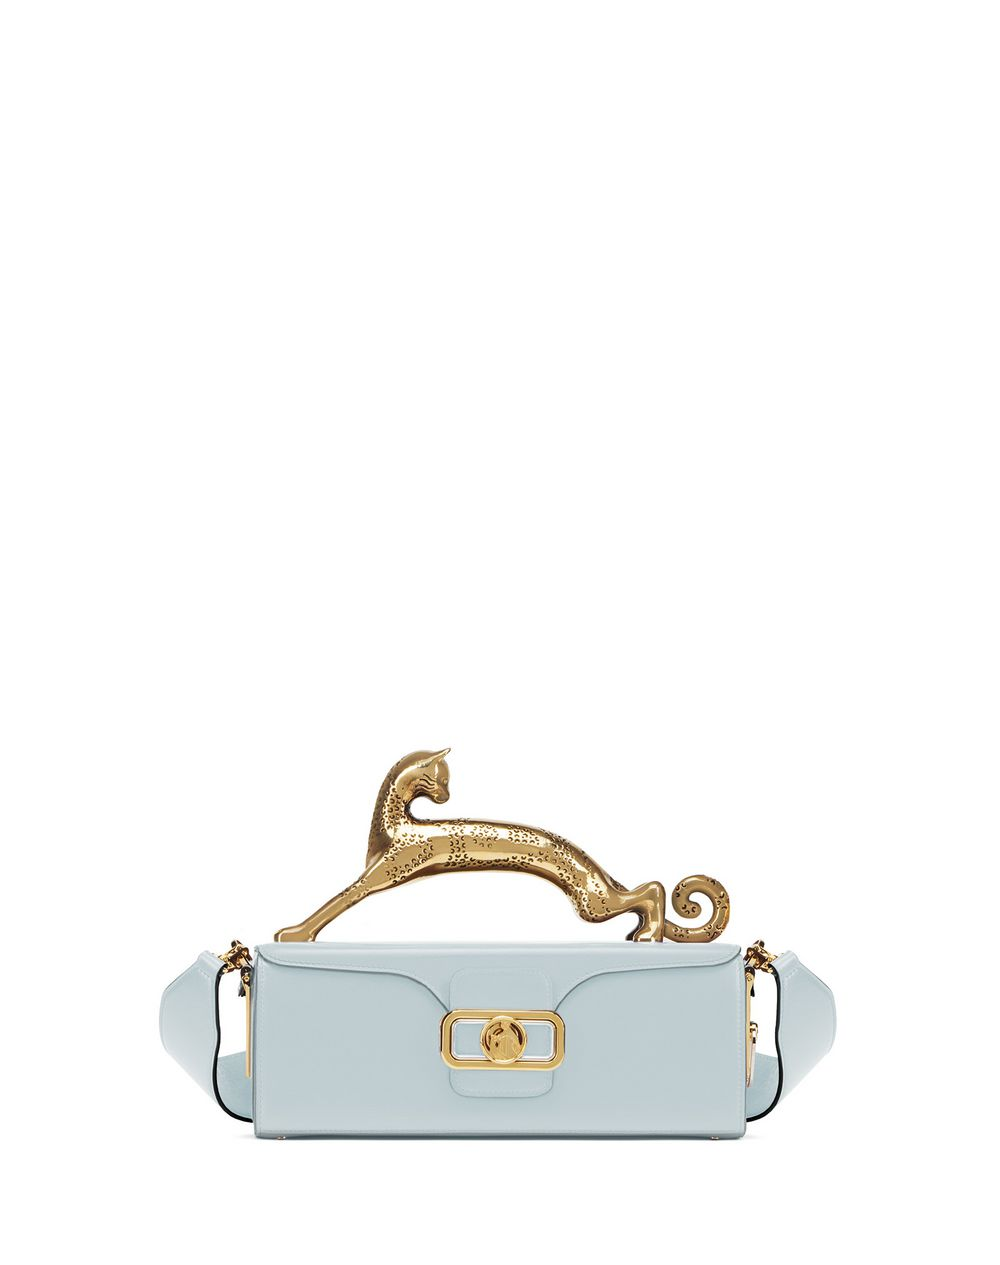 LANVIN BLUE PENCIL BAG - Lanvin